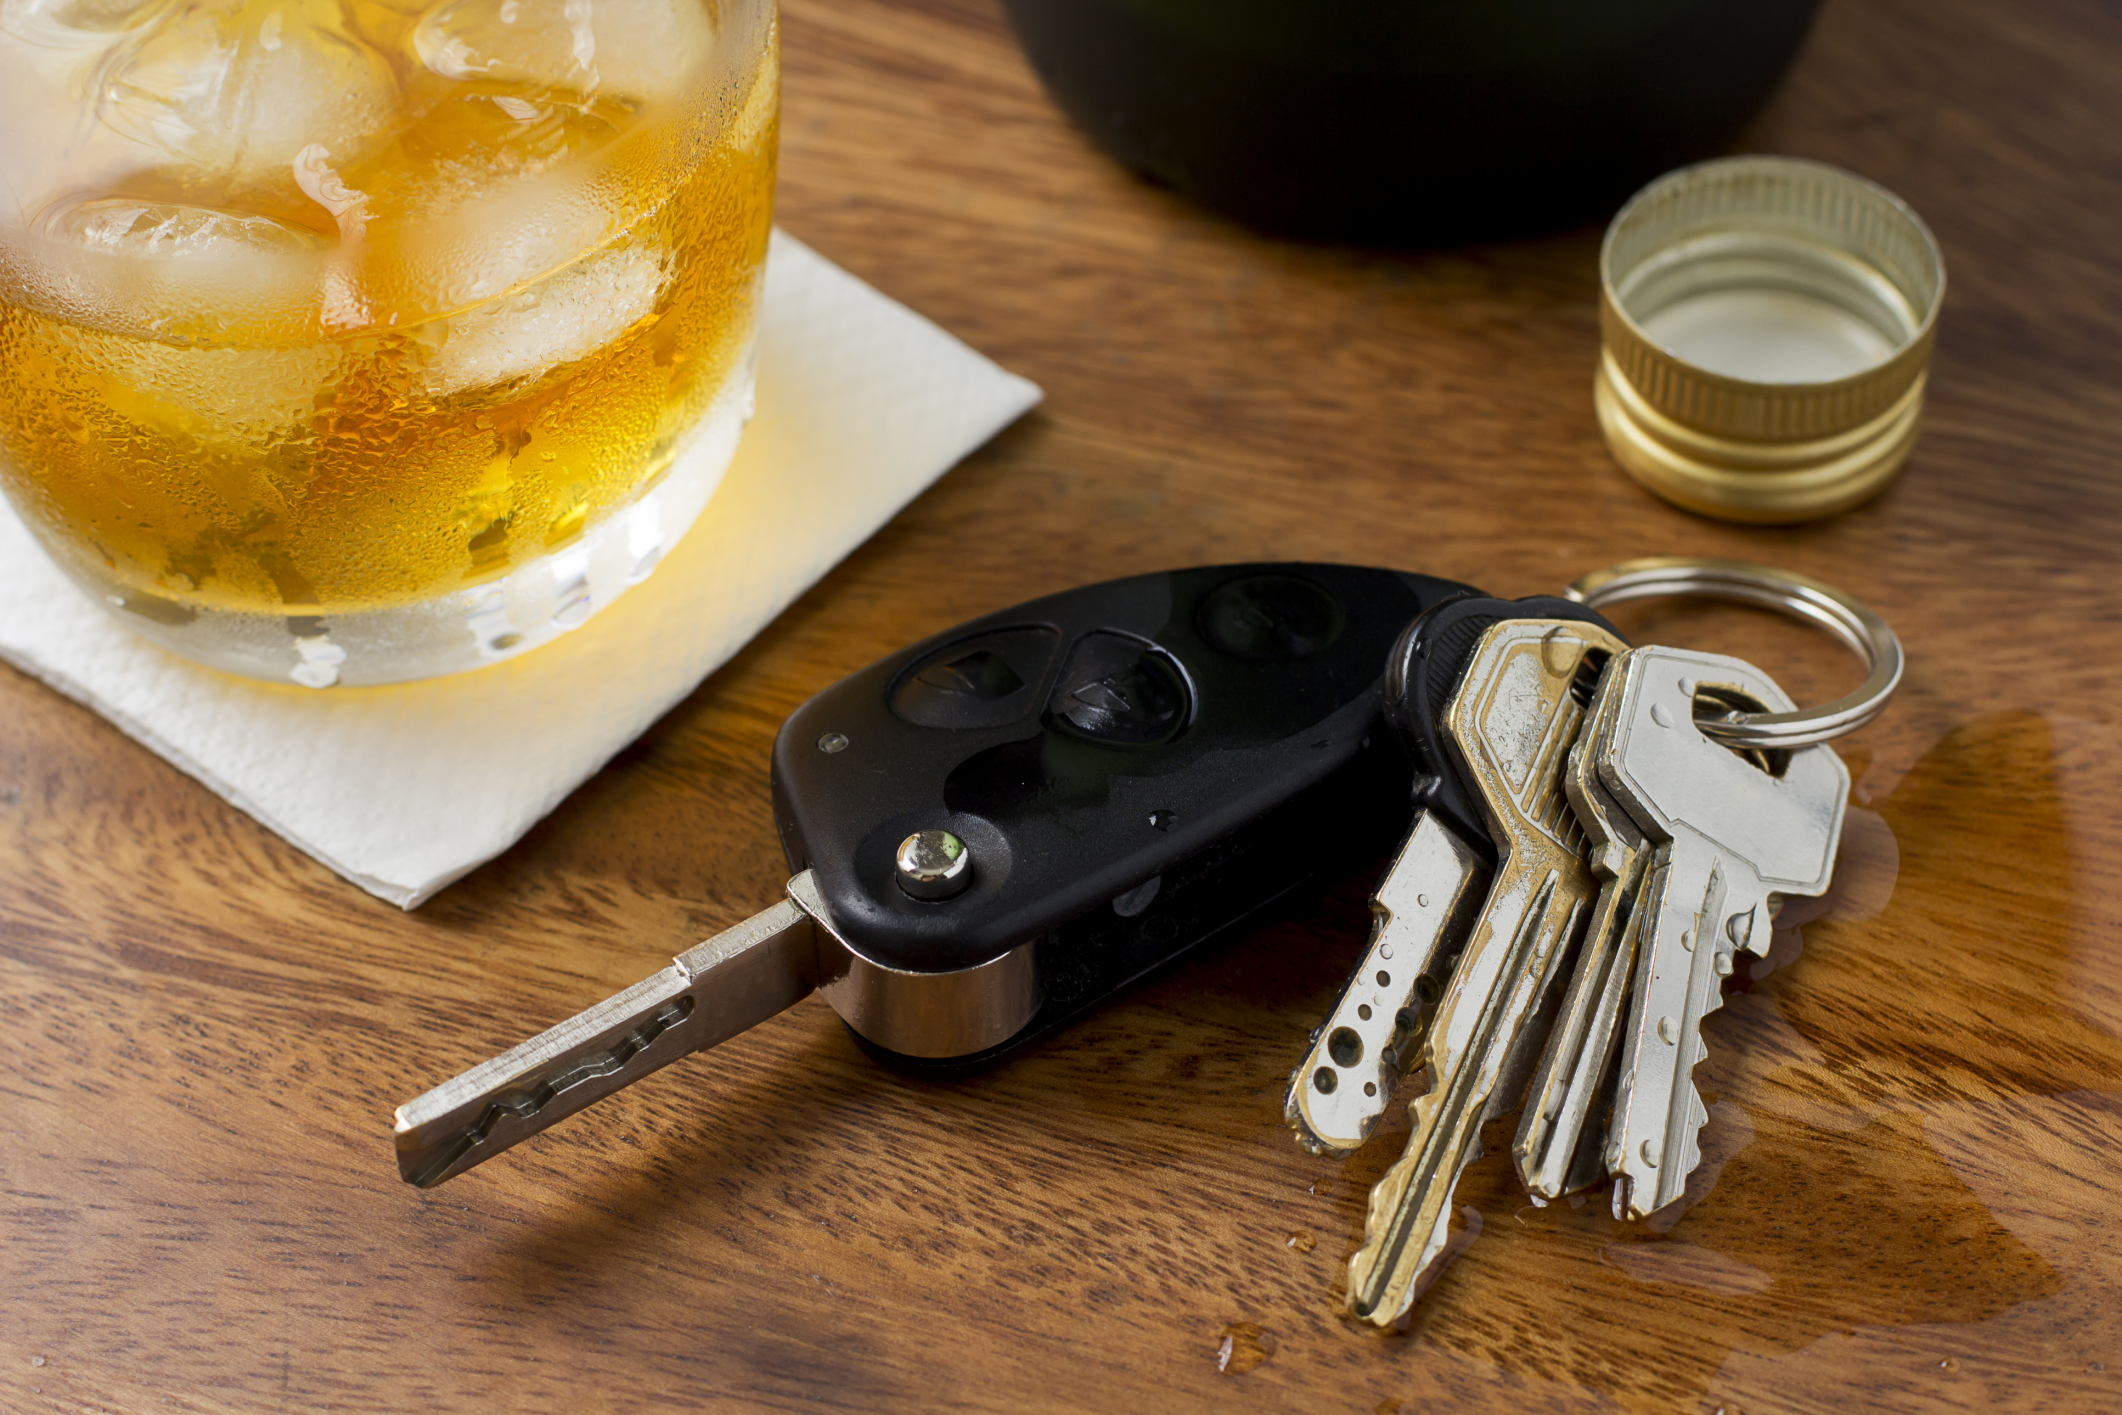 Do You Need Criminal Defence Lawyer Toronto For DUI?